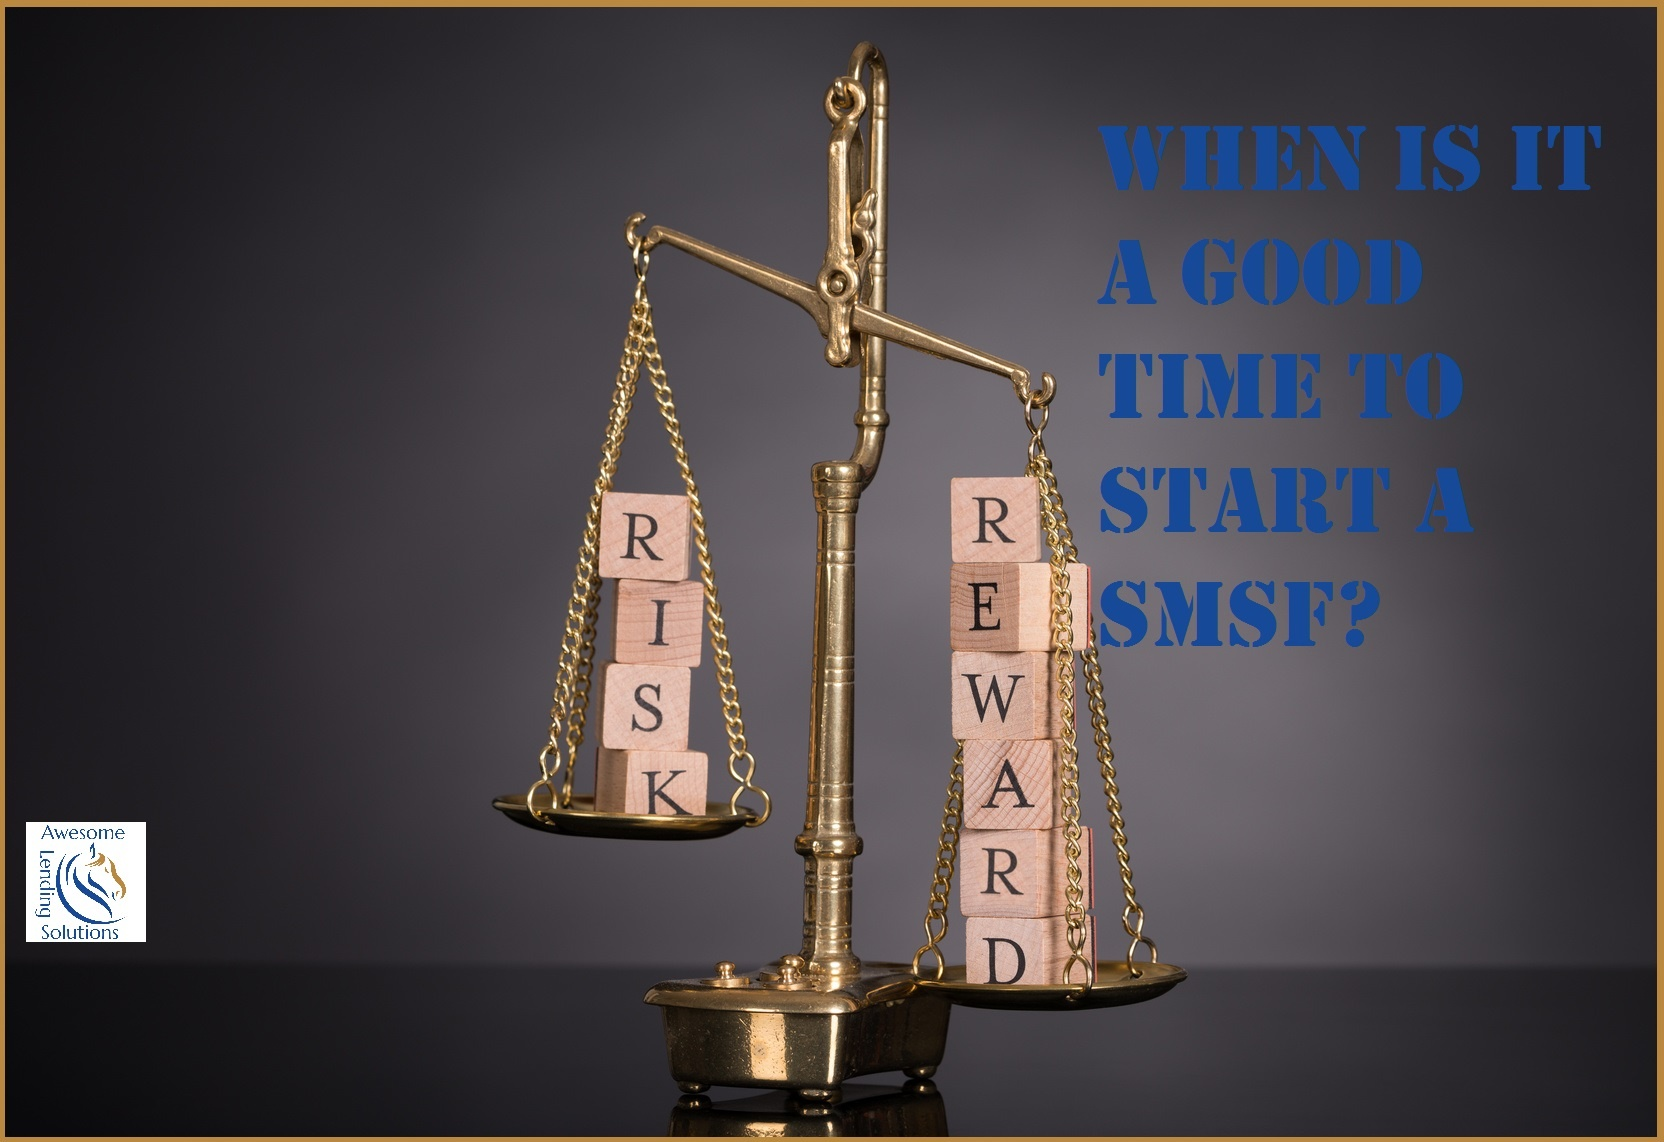 When_is_it_a_good_time_to_start_a_SMSF